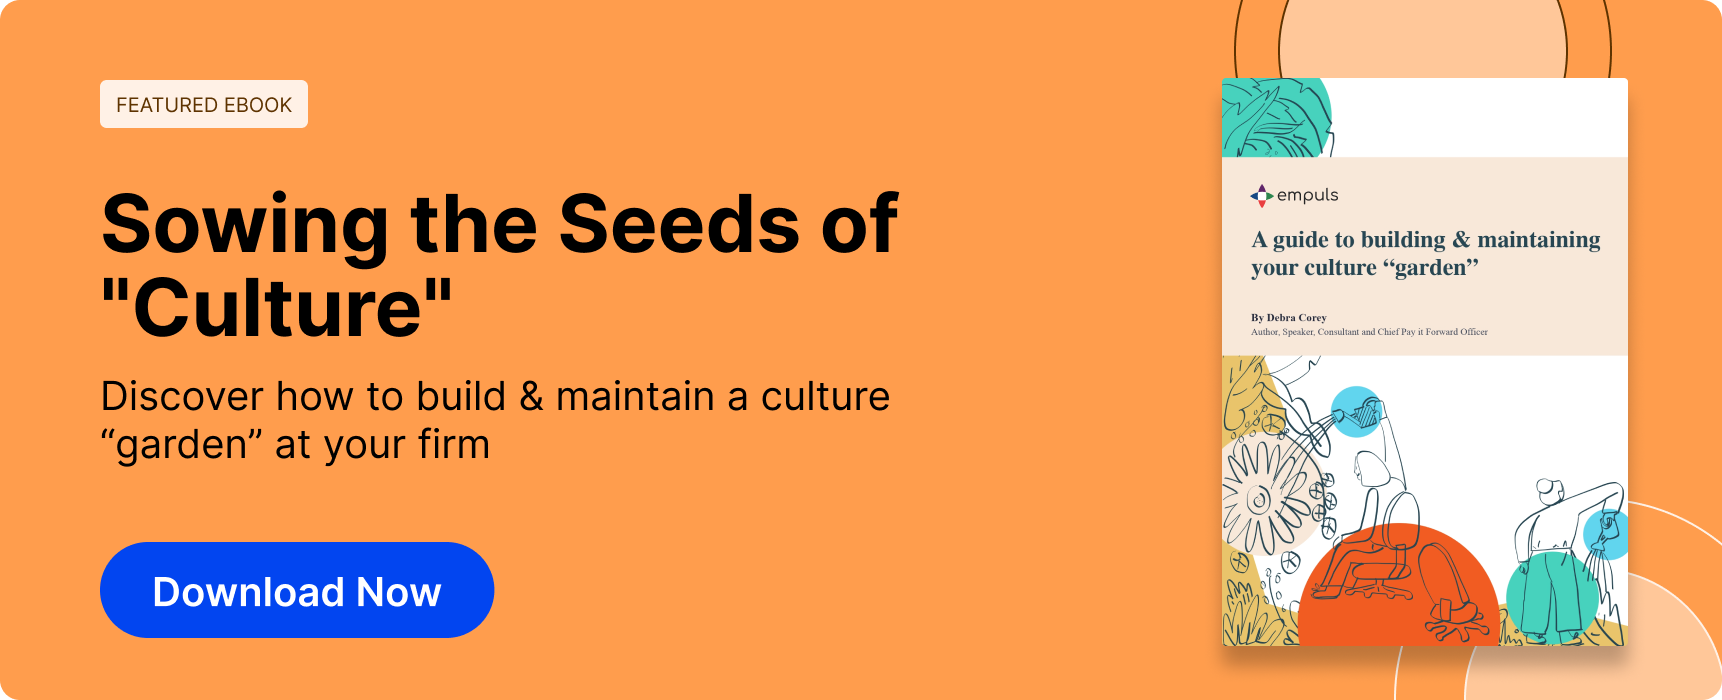 Guide to Building and Maintaning culture